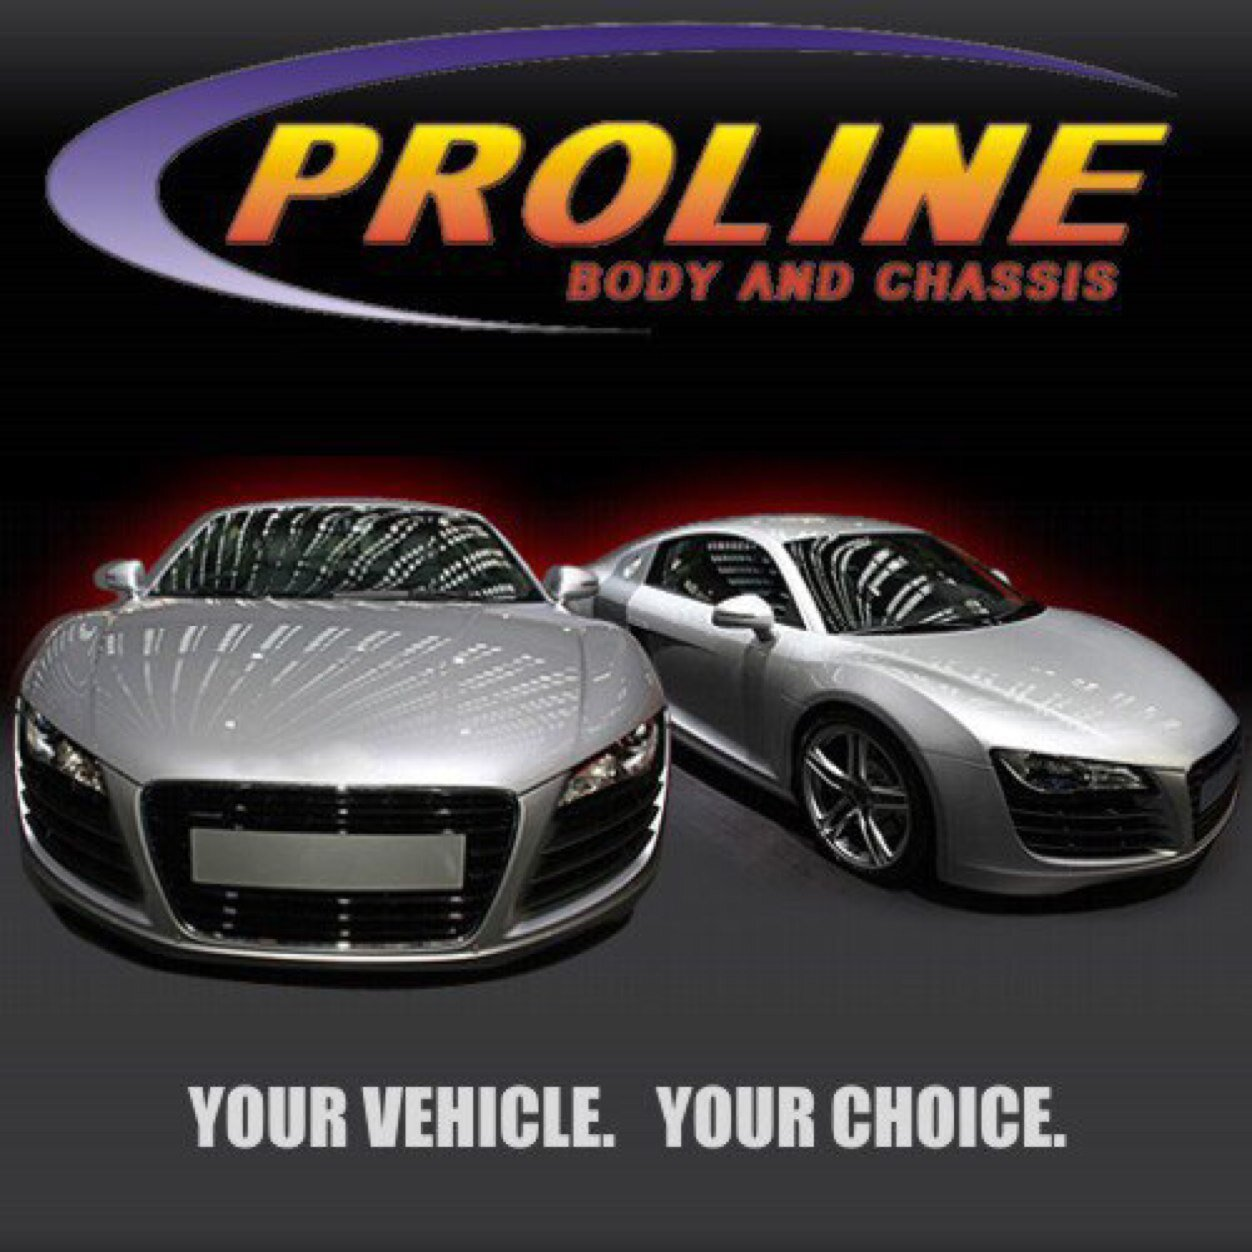 Proline Auto Body On Twitter Audi A In The Booth Today Audi - Audi auto body